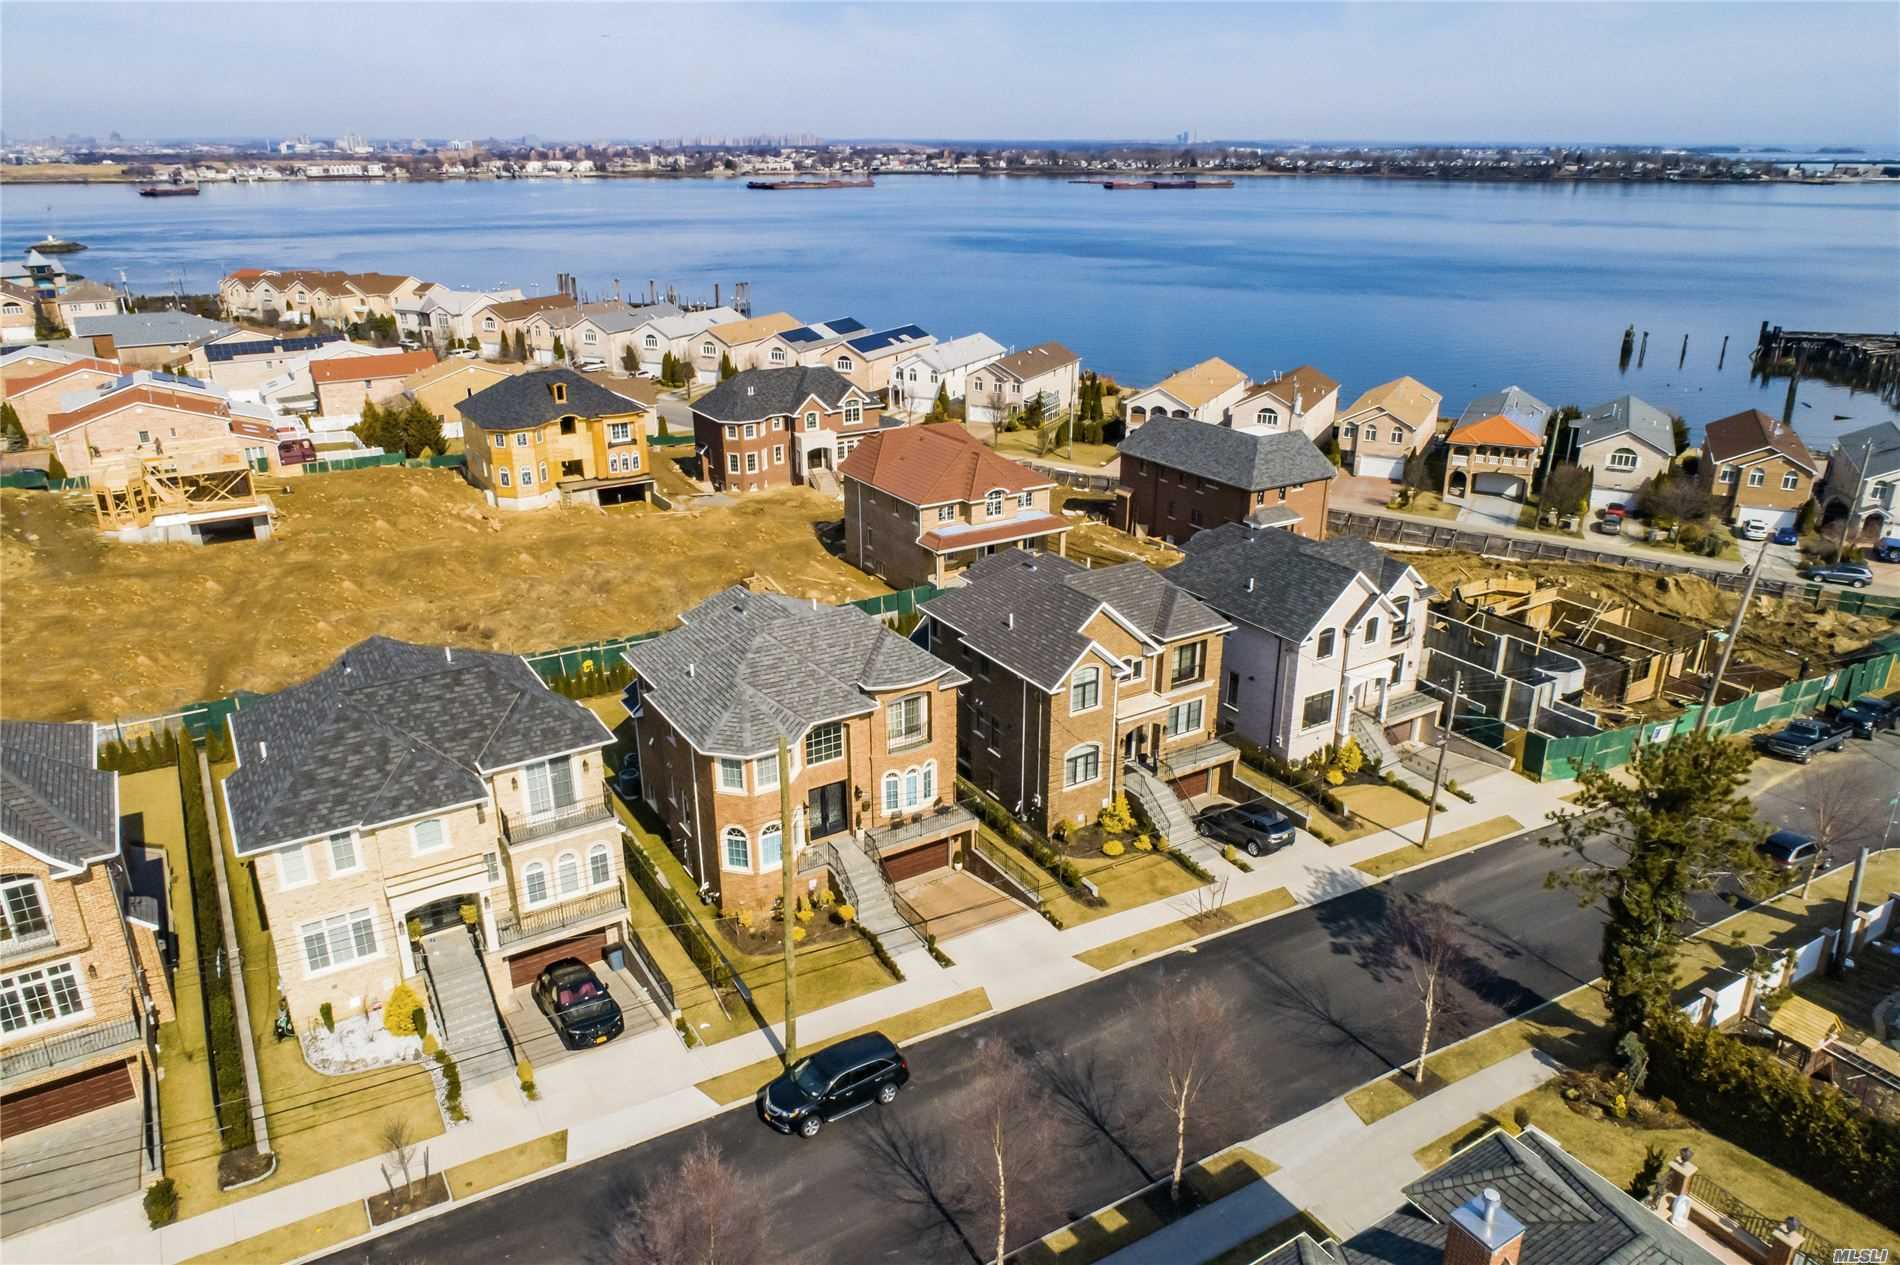 ***Time To Customize*** New Whitestone Development, The Bridges At Whitestone. Brick And Precast Stone Center Hall Colonials 4 Bedrooms, 3.5 Baths. Designed By Renowned Architect And Built By Award Winning Developer. High End Architectural Details Throughout, Hardwood Floors, Marble Entry, 9'8 Ceilings On 1st Fl And Cathedral On 2nd Fl. Close Proximity To Major Highways, Airports, Nyc